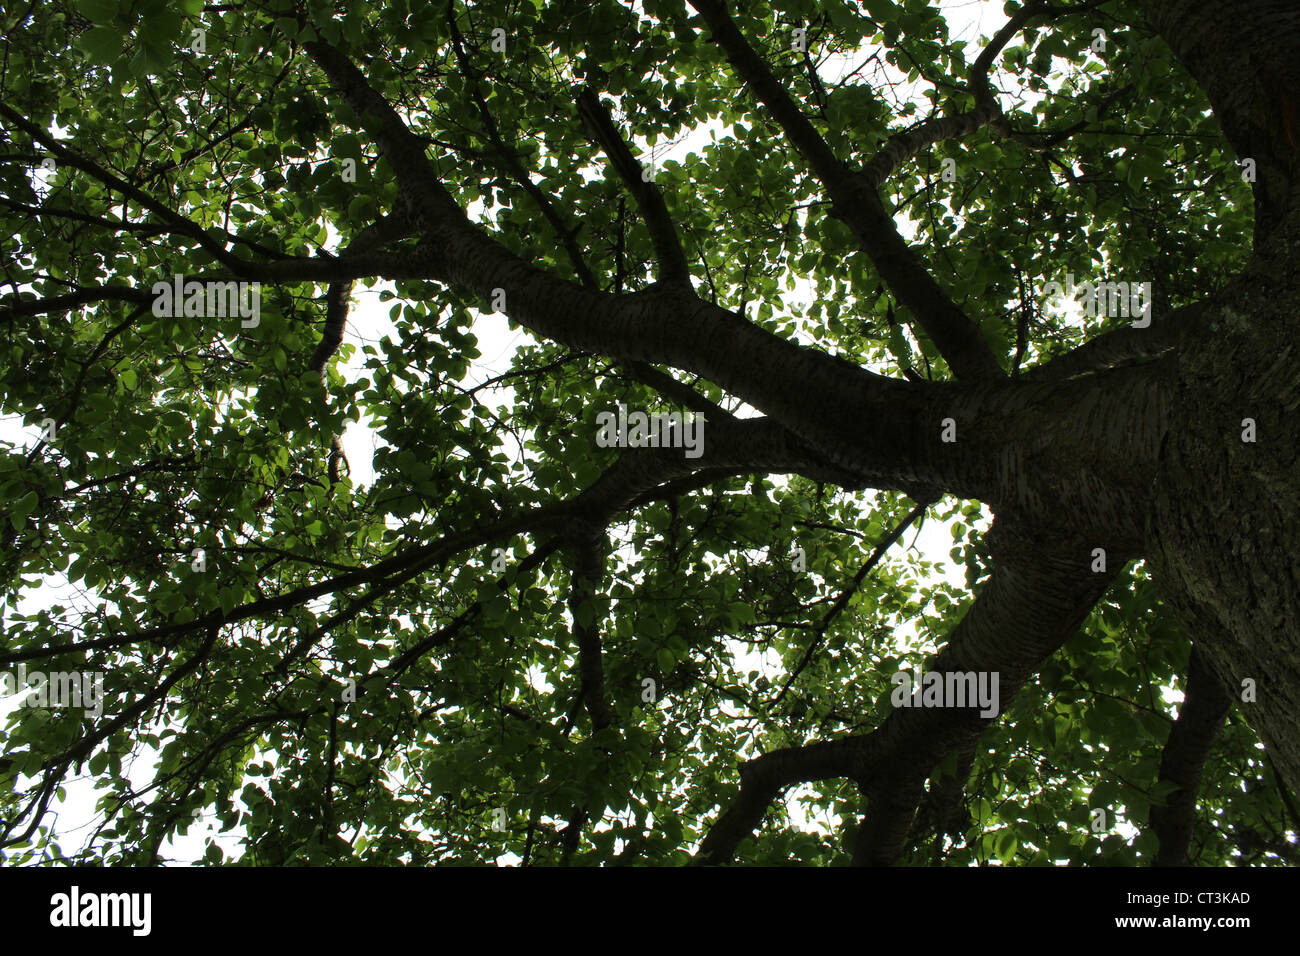 The darkness of tree's (The underside of an old willow tree). - Stock Image